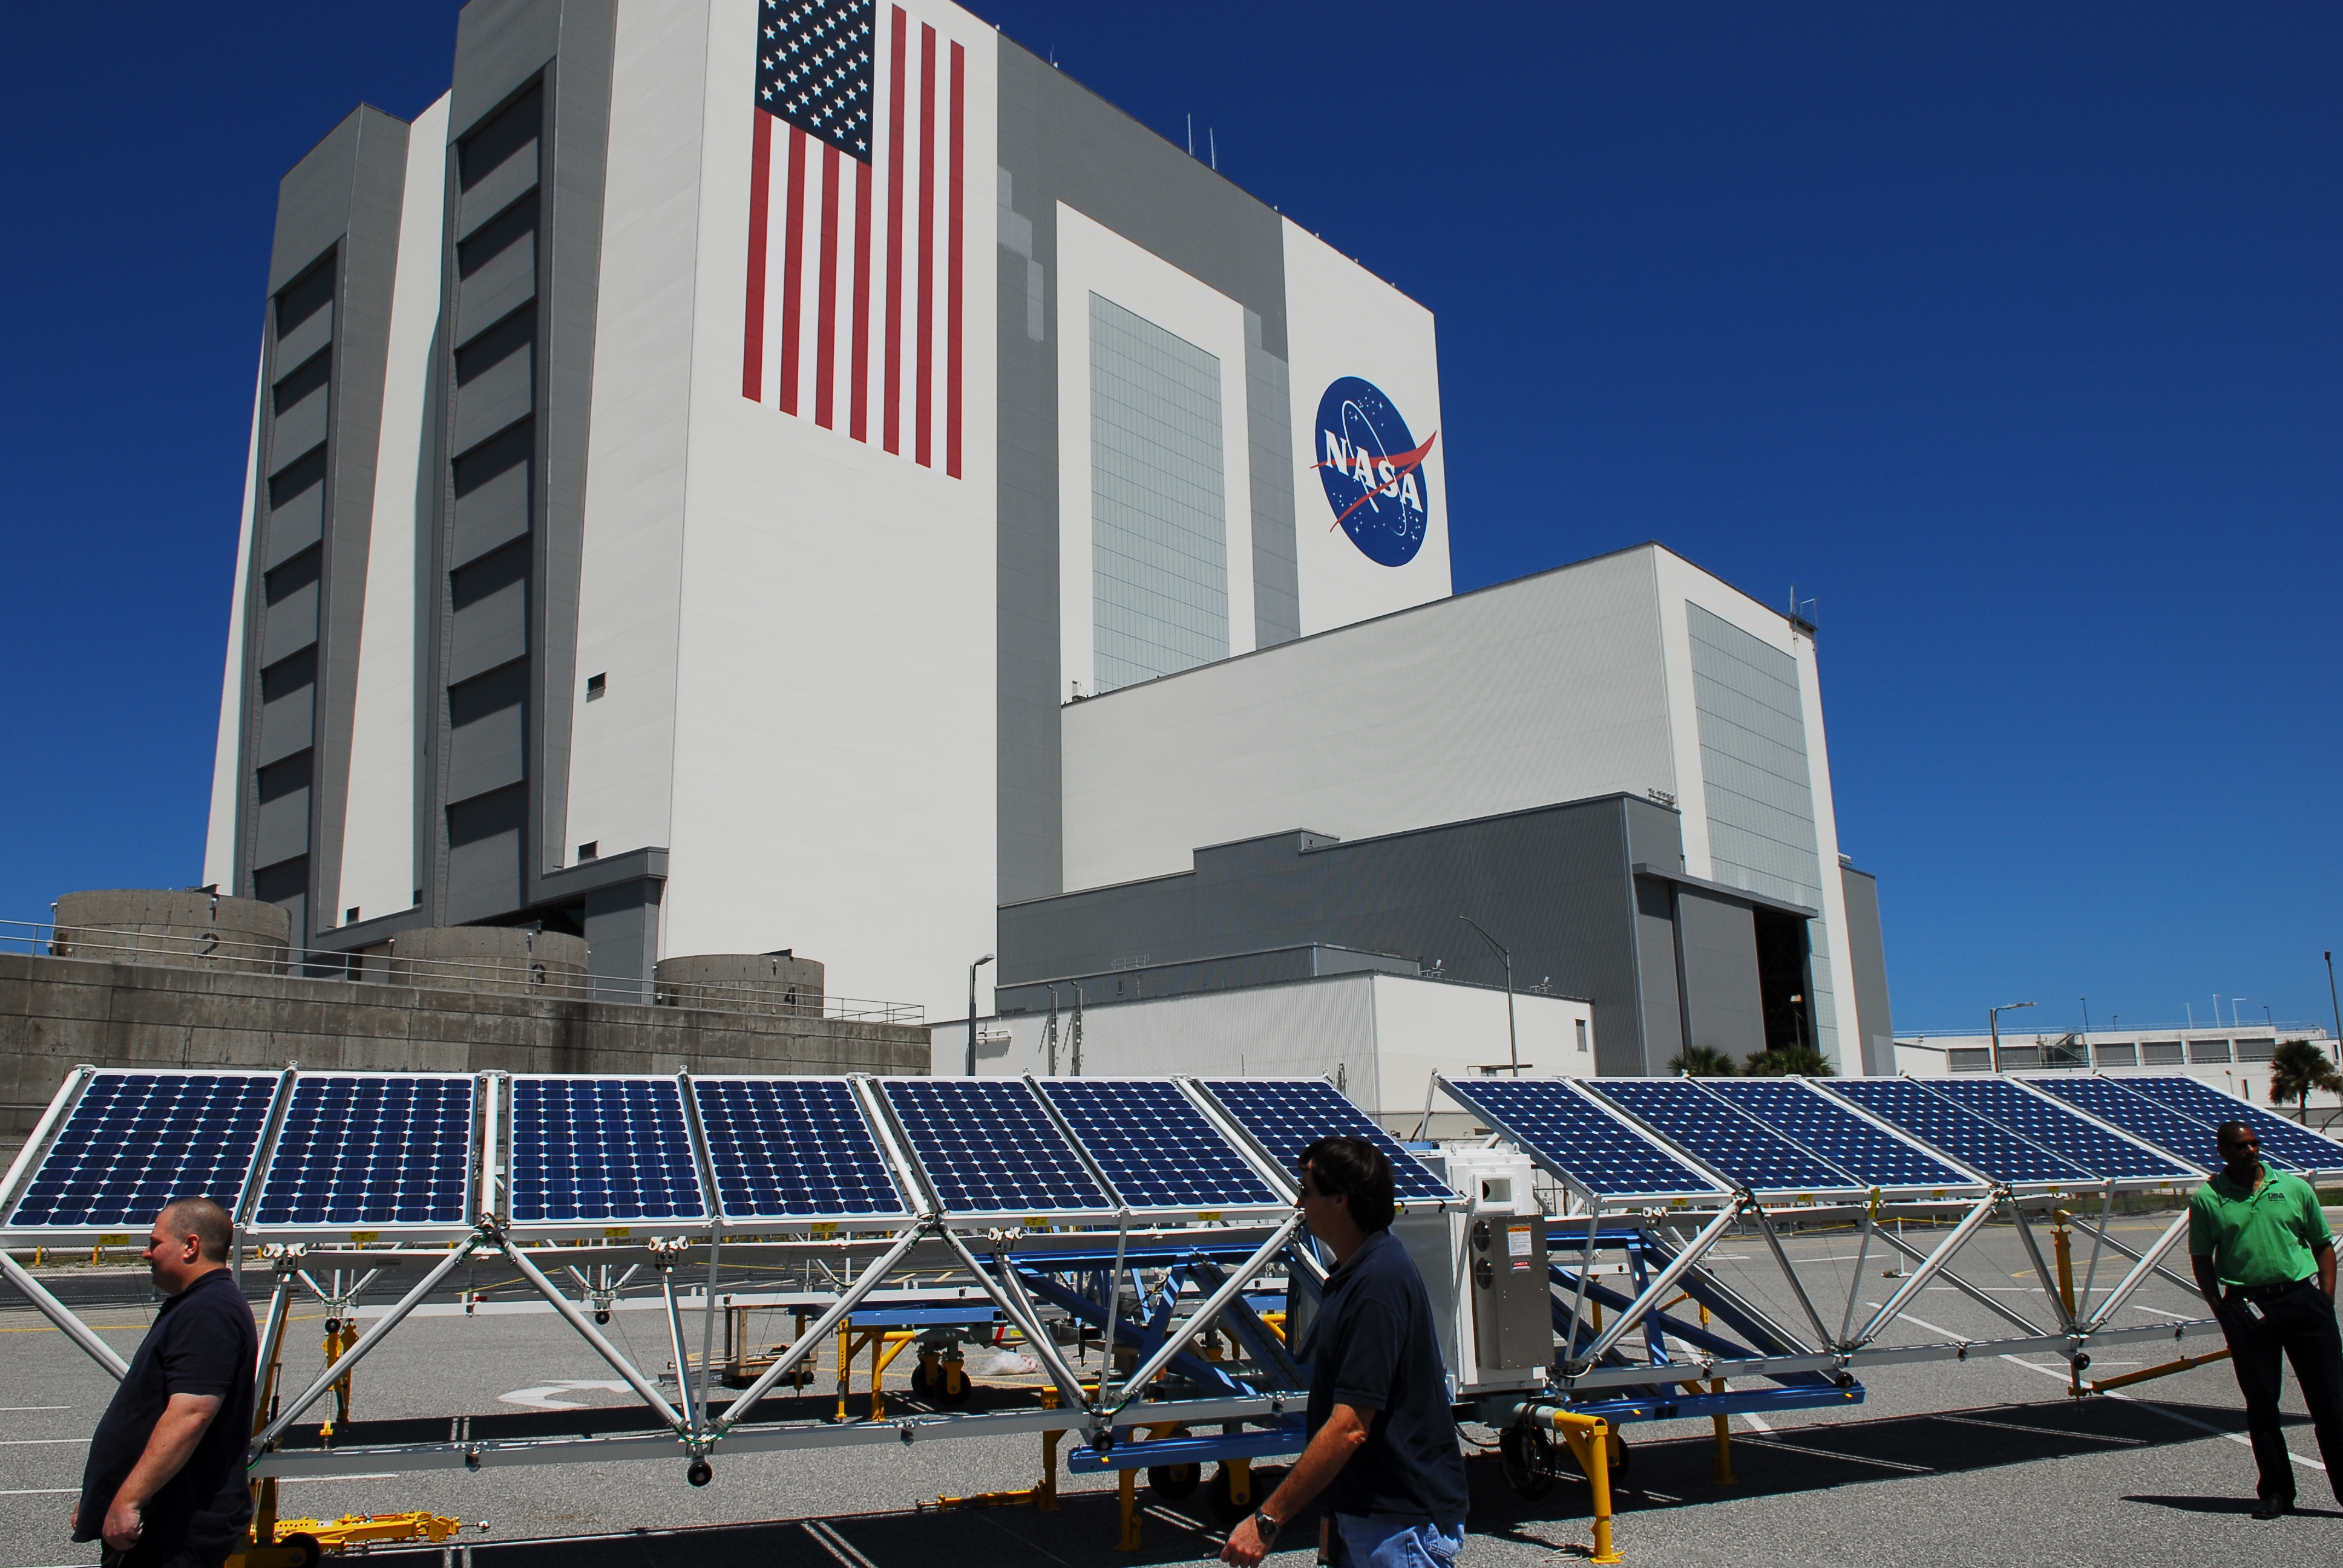 The prototype solar power generator was deployed recently near the ...